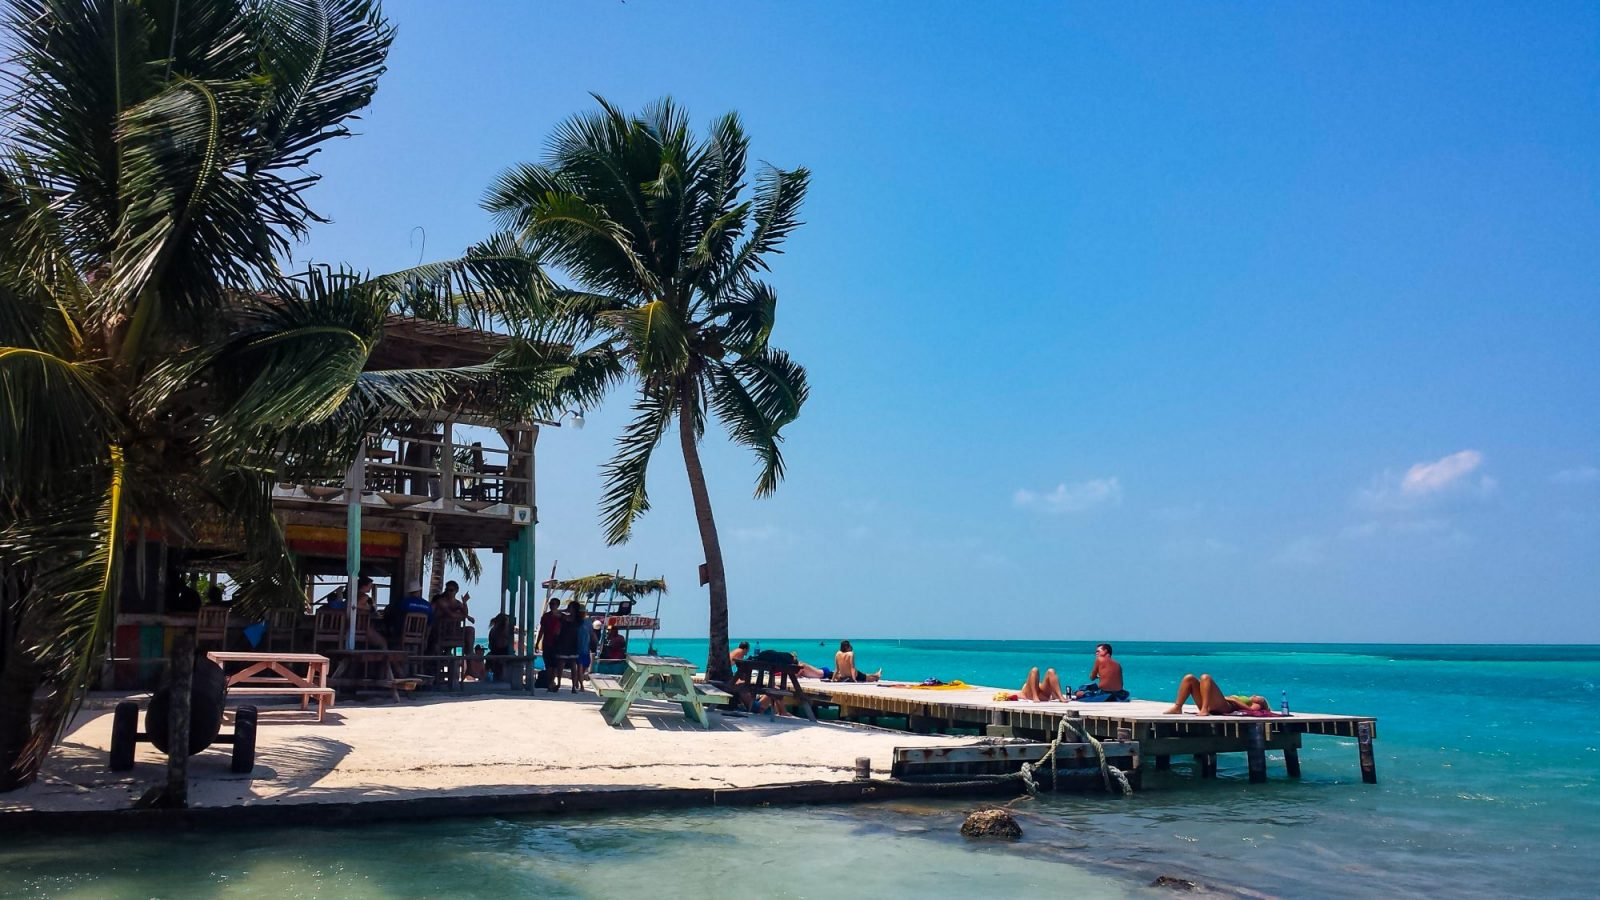 Caye Caulker Belize On An Affordable Budget Just A Pack